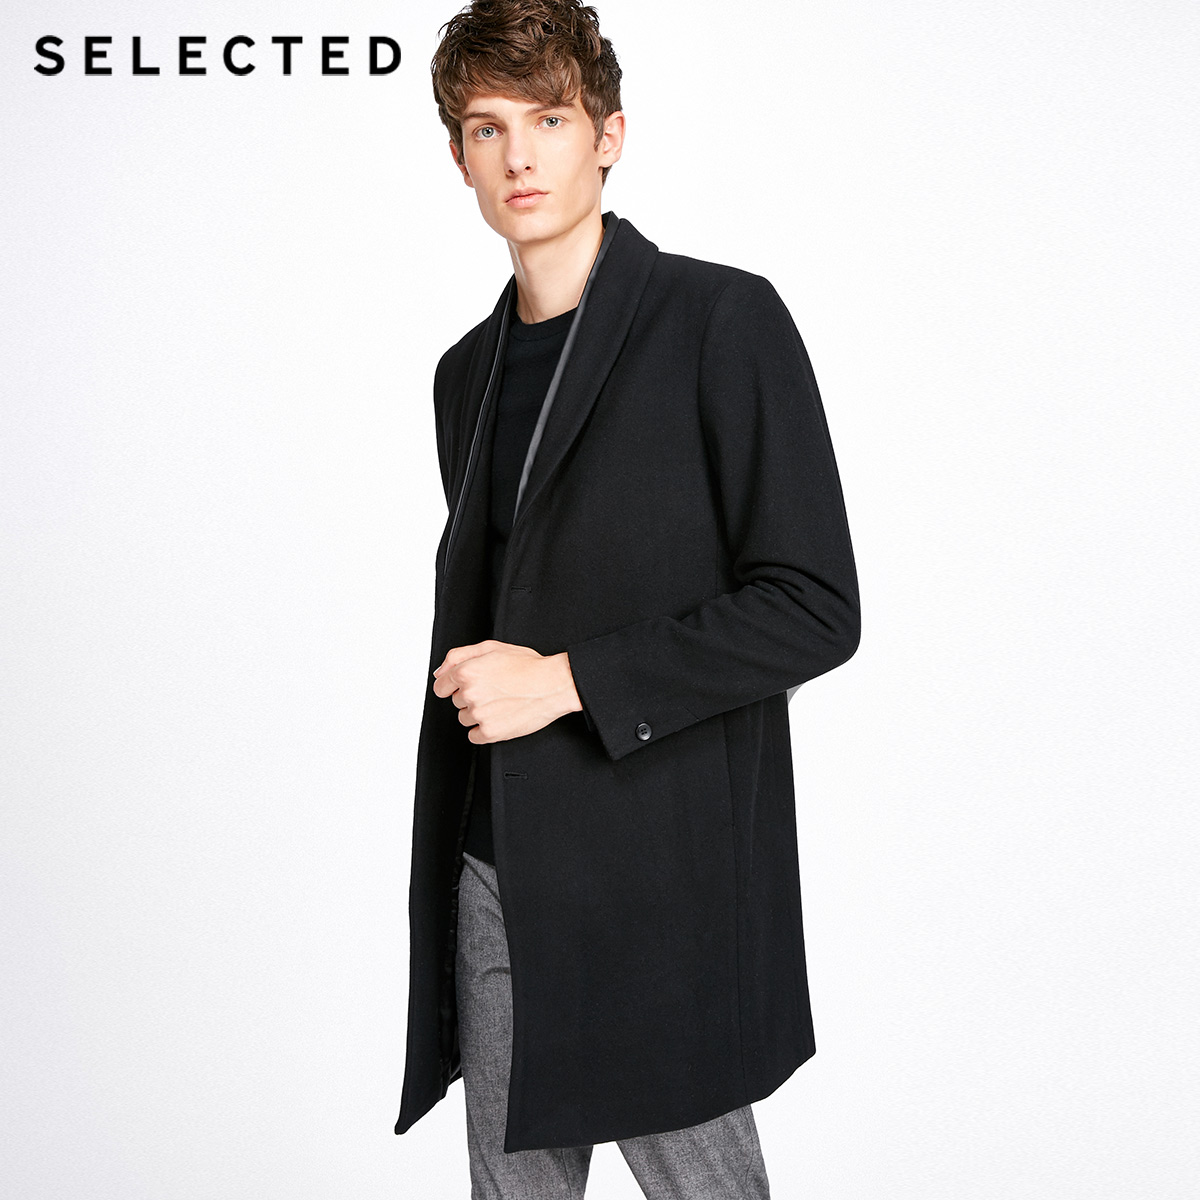 SELECTED Winter Long Wool Coat Men's Contains Woolen Male Clothes Outwear Jacket S | 417427521